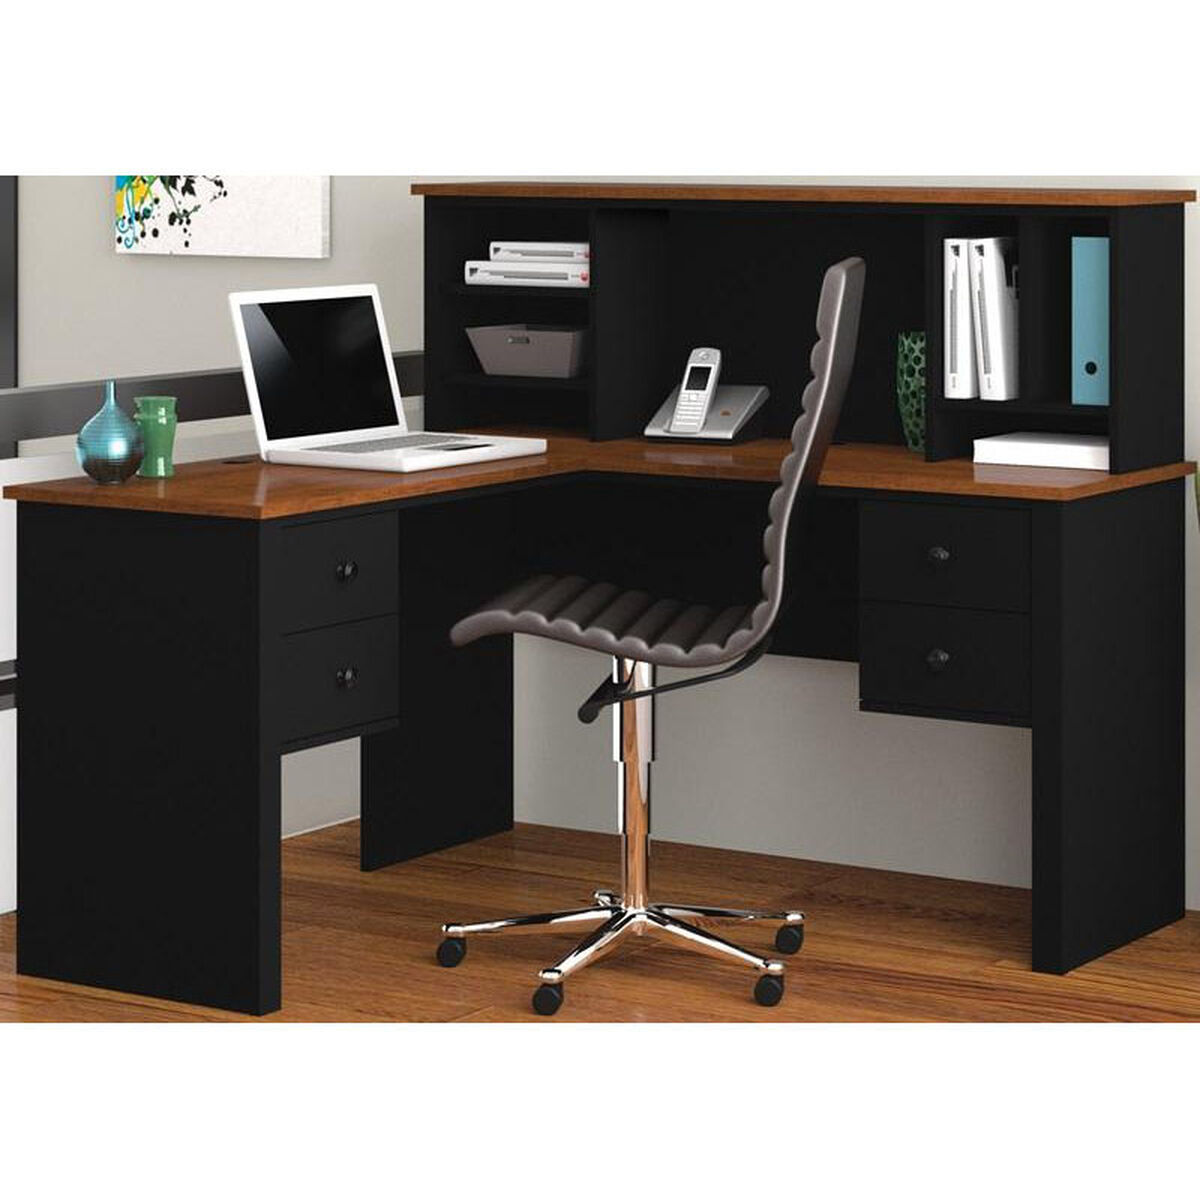 Our Somerville L Shaped Desk With Hutch And Drawers Black Tuscany Brown Is